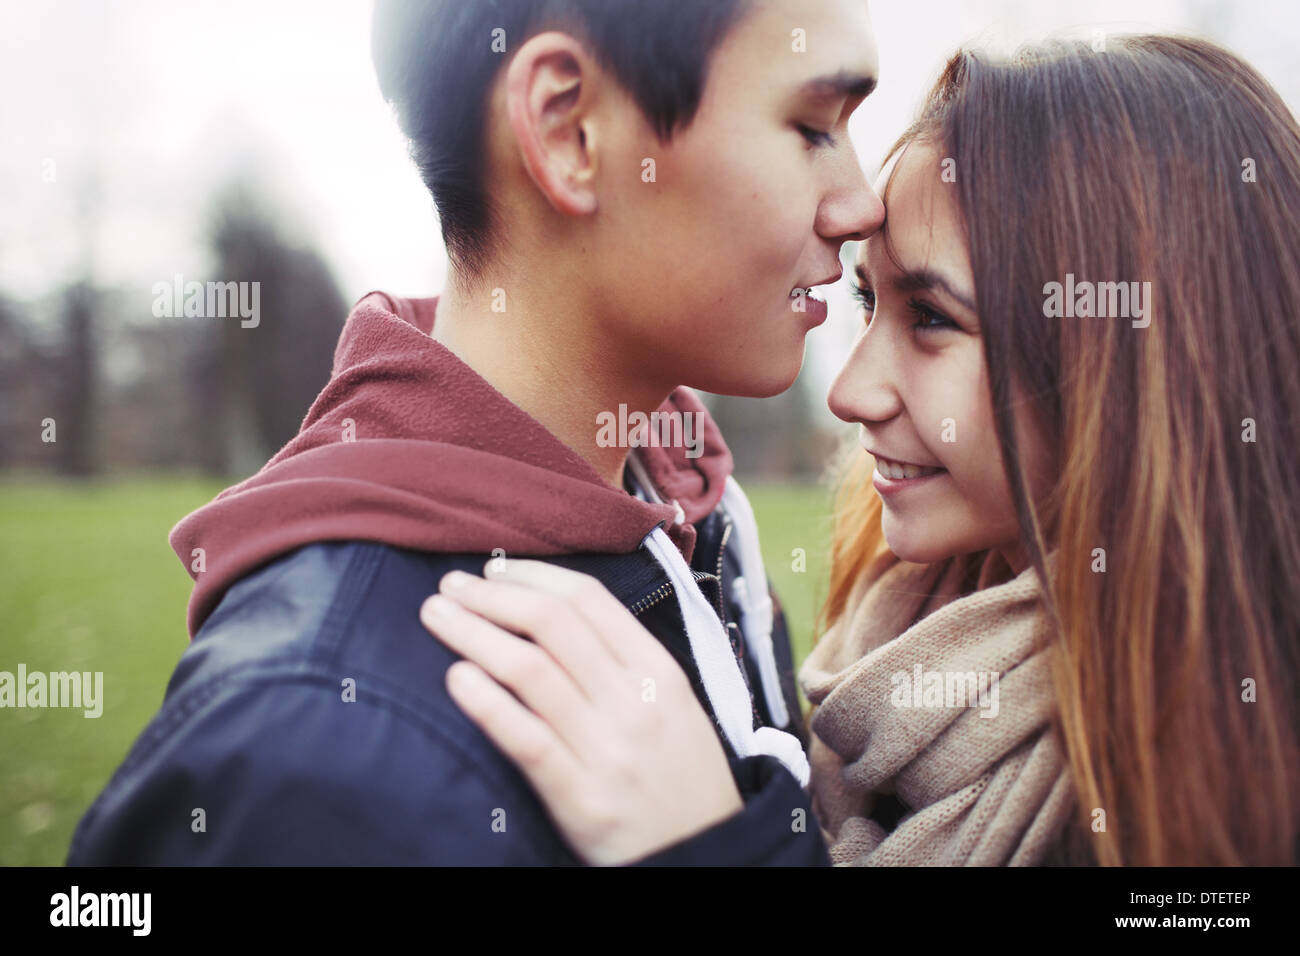 Close up image of cute young couple in love together in park. Asian teenage couple spending romantic time with each other. Stock Photo